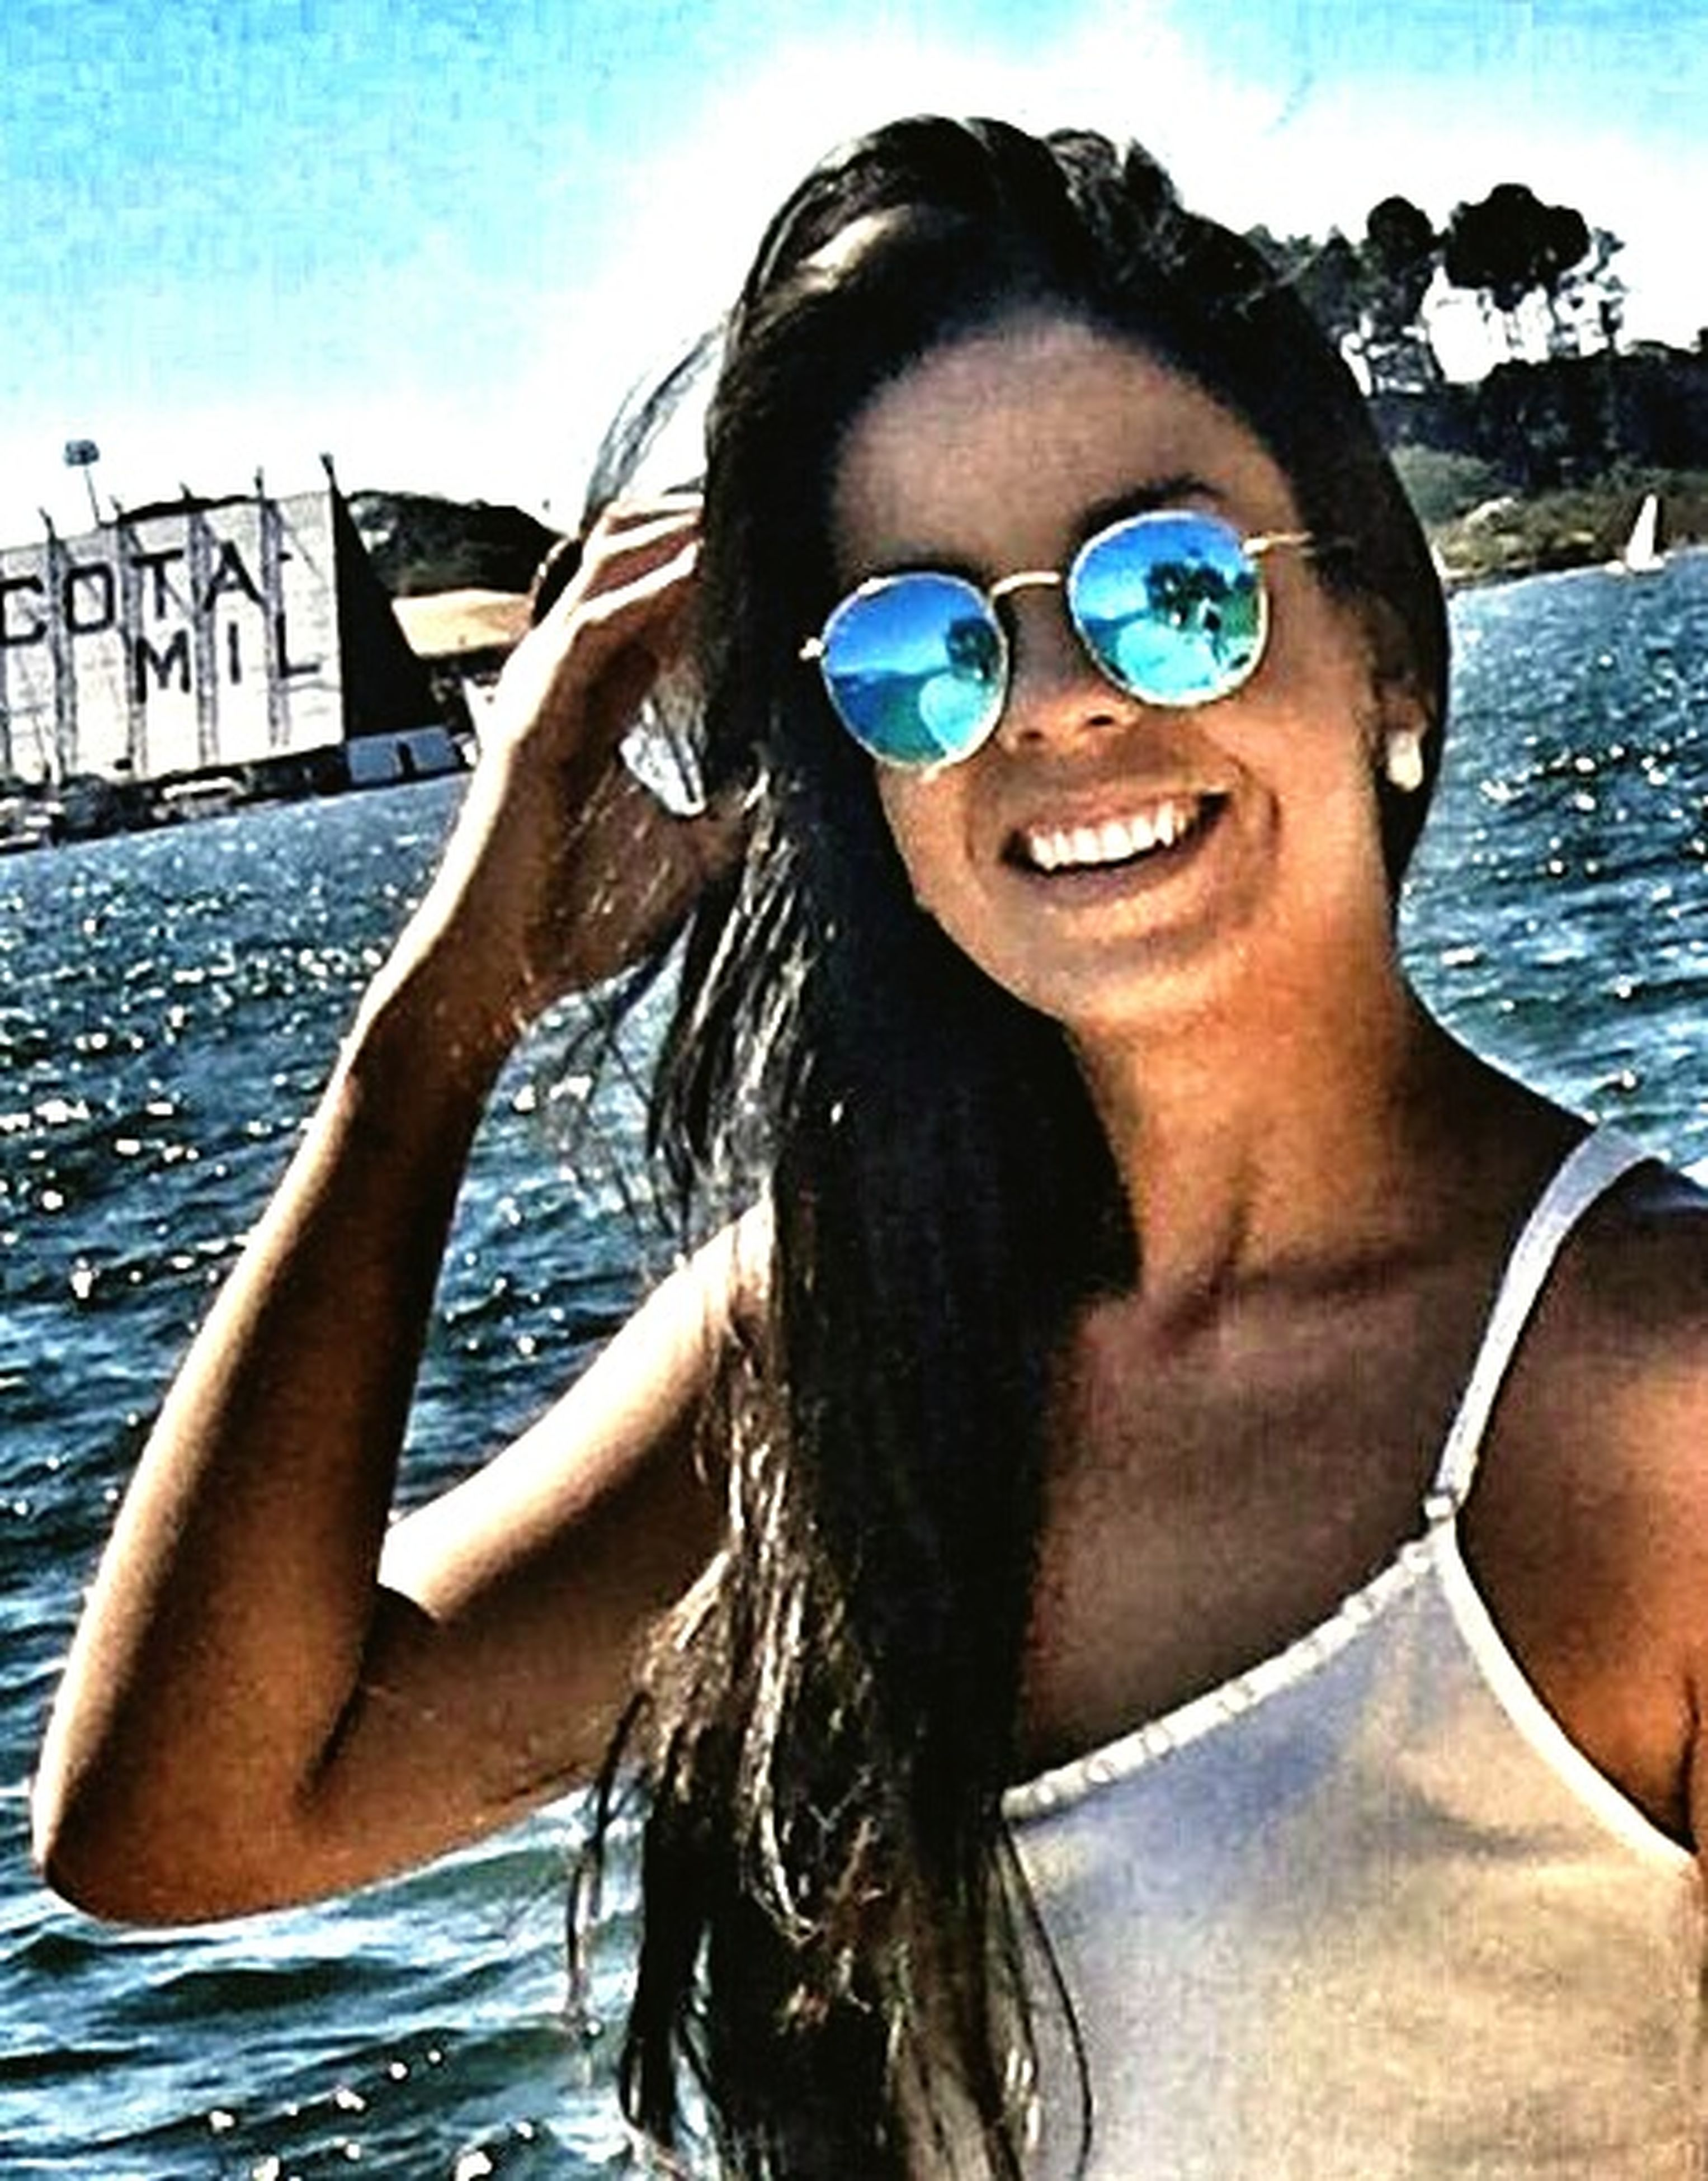 young adult, sunglasses, person, portrait, looking at camera, lifestyles, leisure activity, young women, sea, water, front view, headshot, vacations, transportation, beach, smiling, sunlight